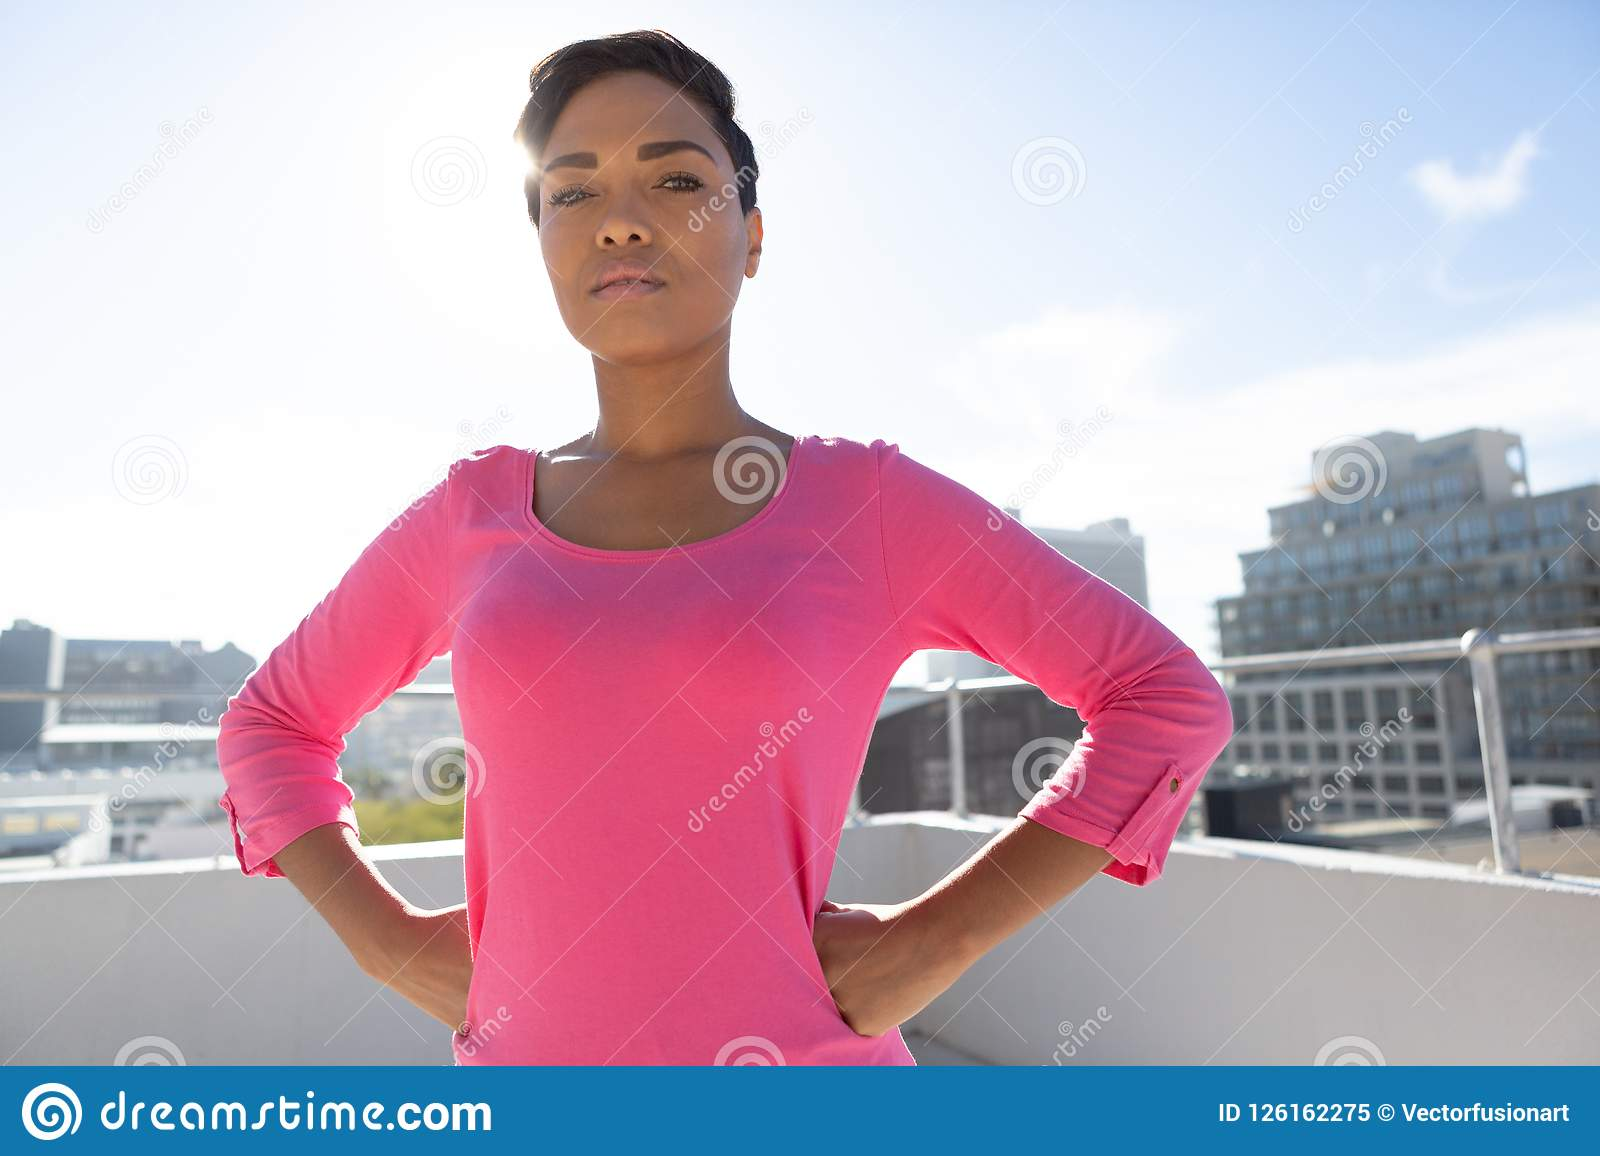 Serious looking woman standing confident for breast cancer awareness